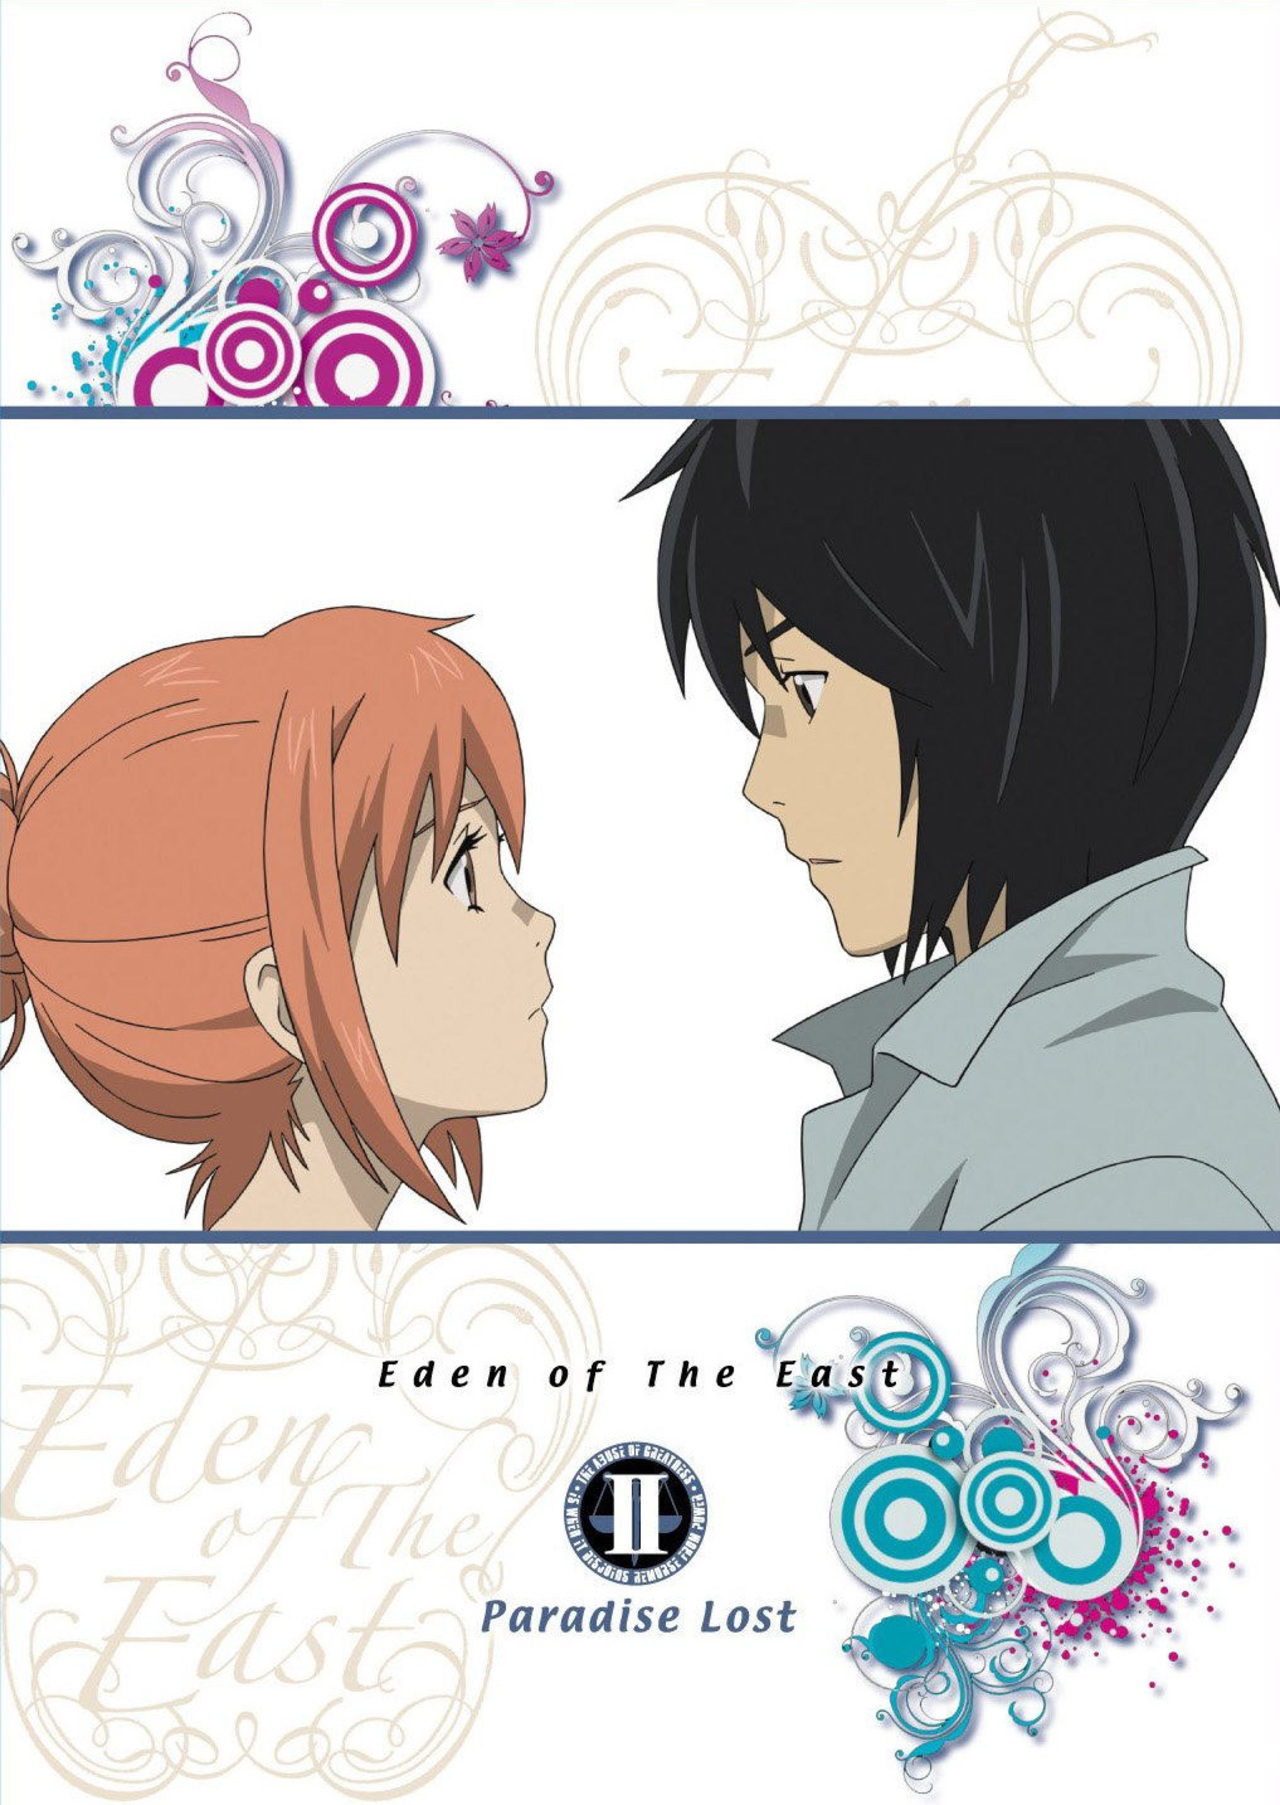 Eden of the East the Movie II: Paradise Lost kapak